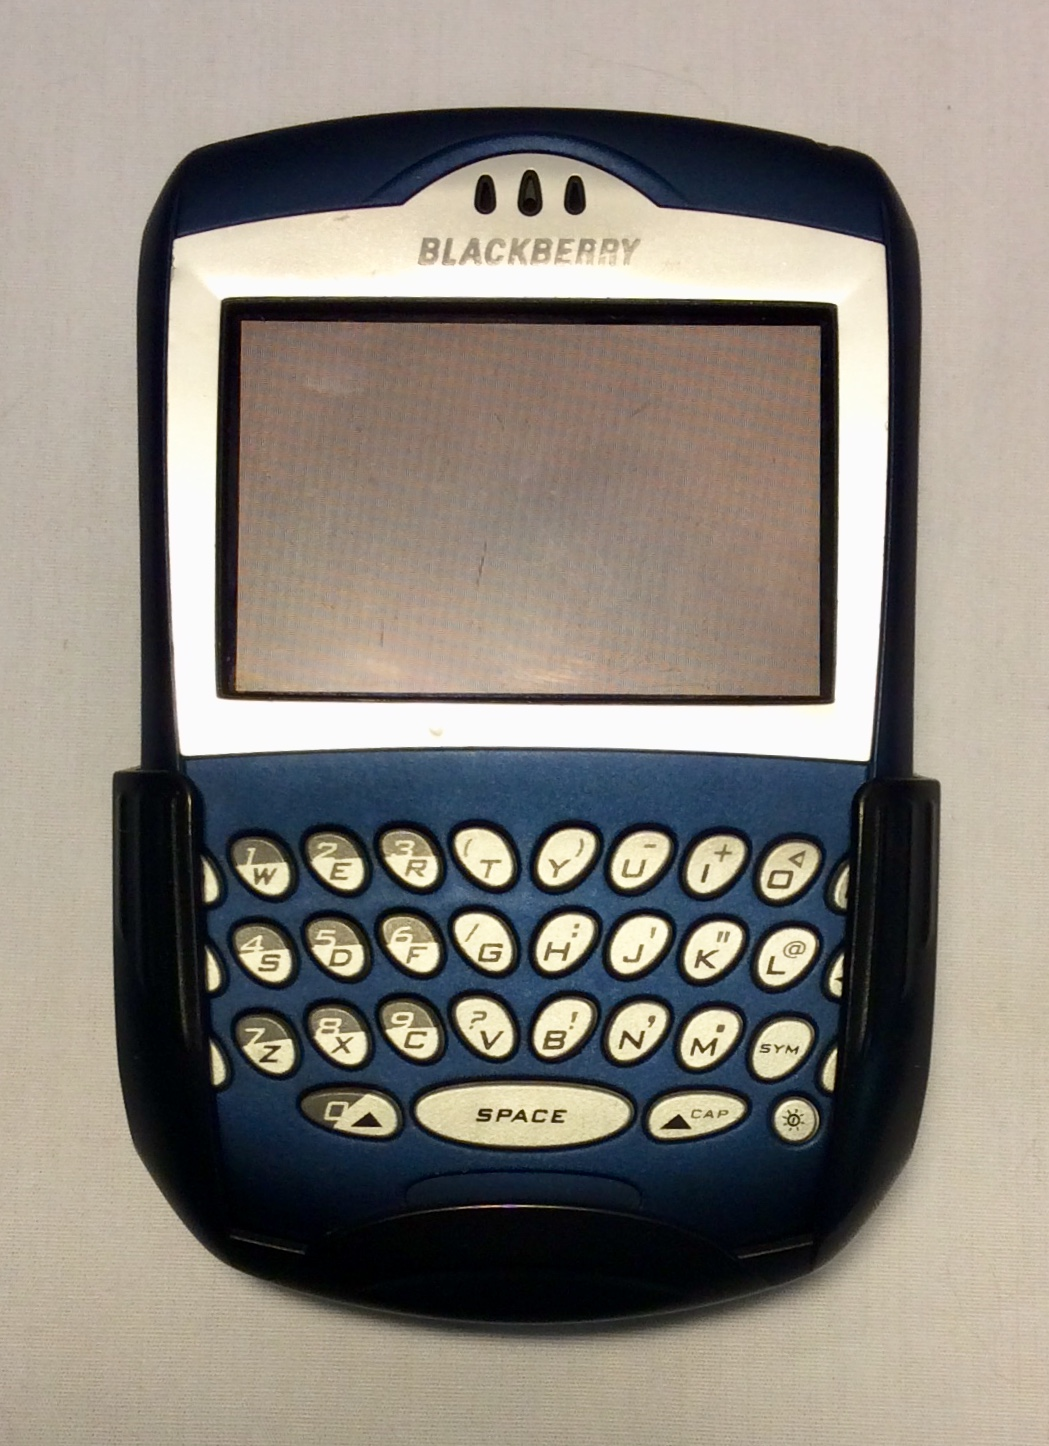 Blackberry circa early 2000s